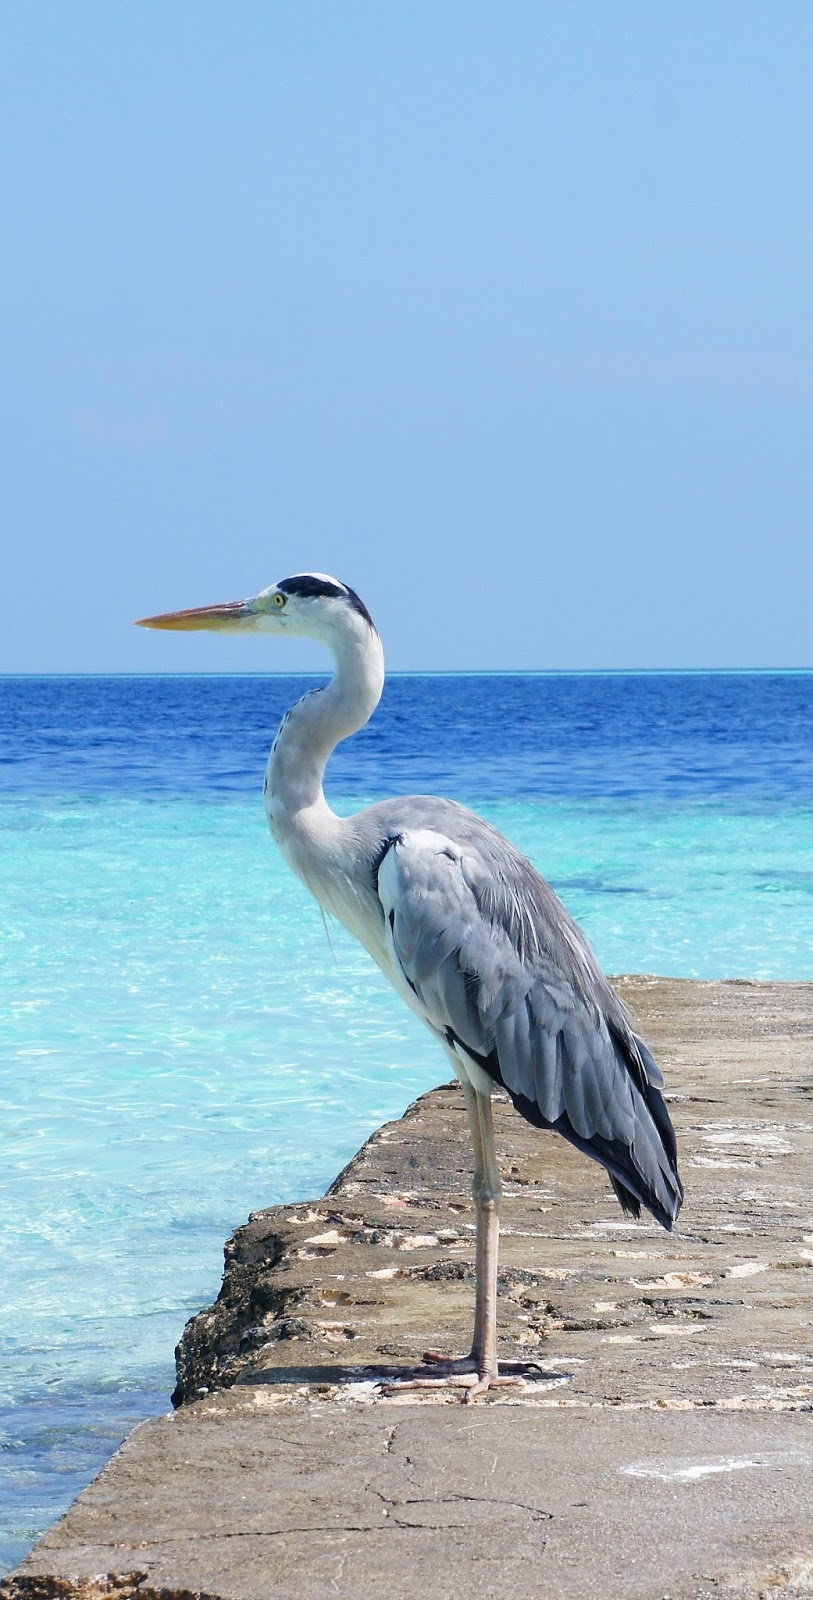 Picture of a stork at the ocean